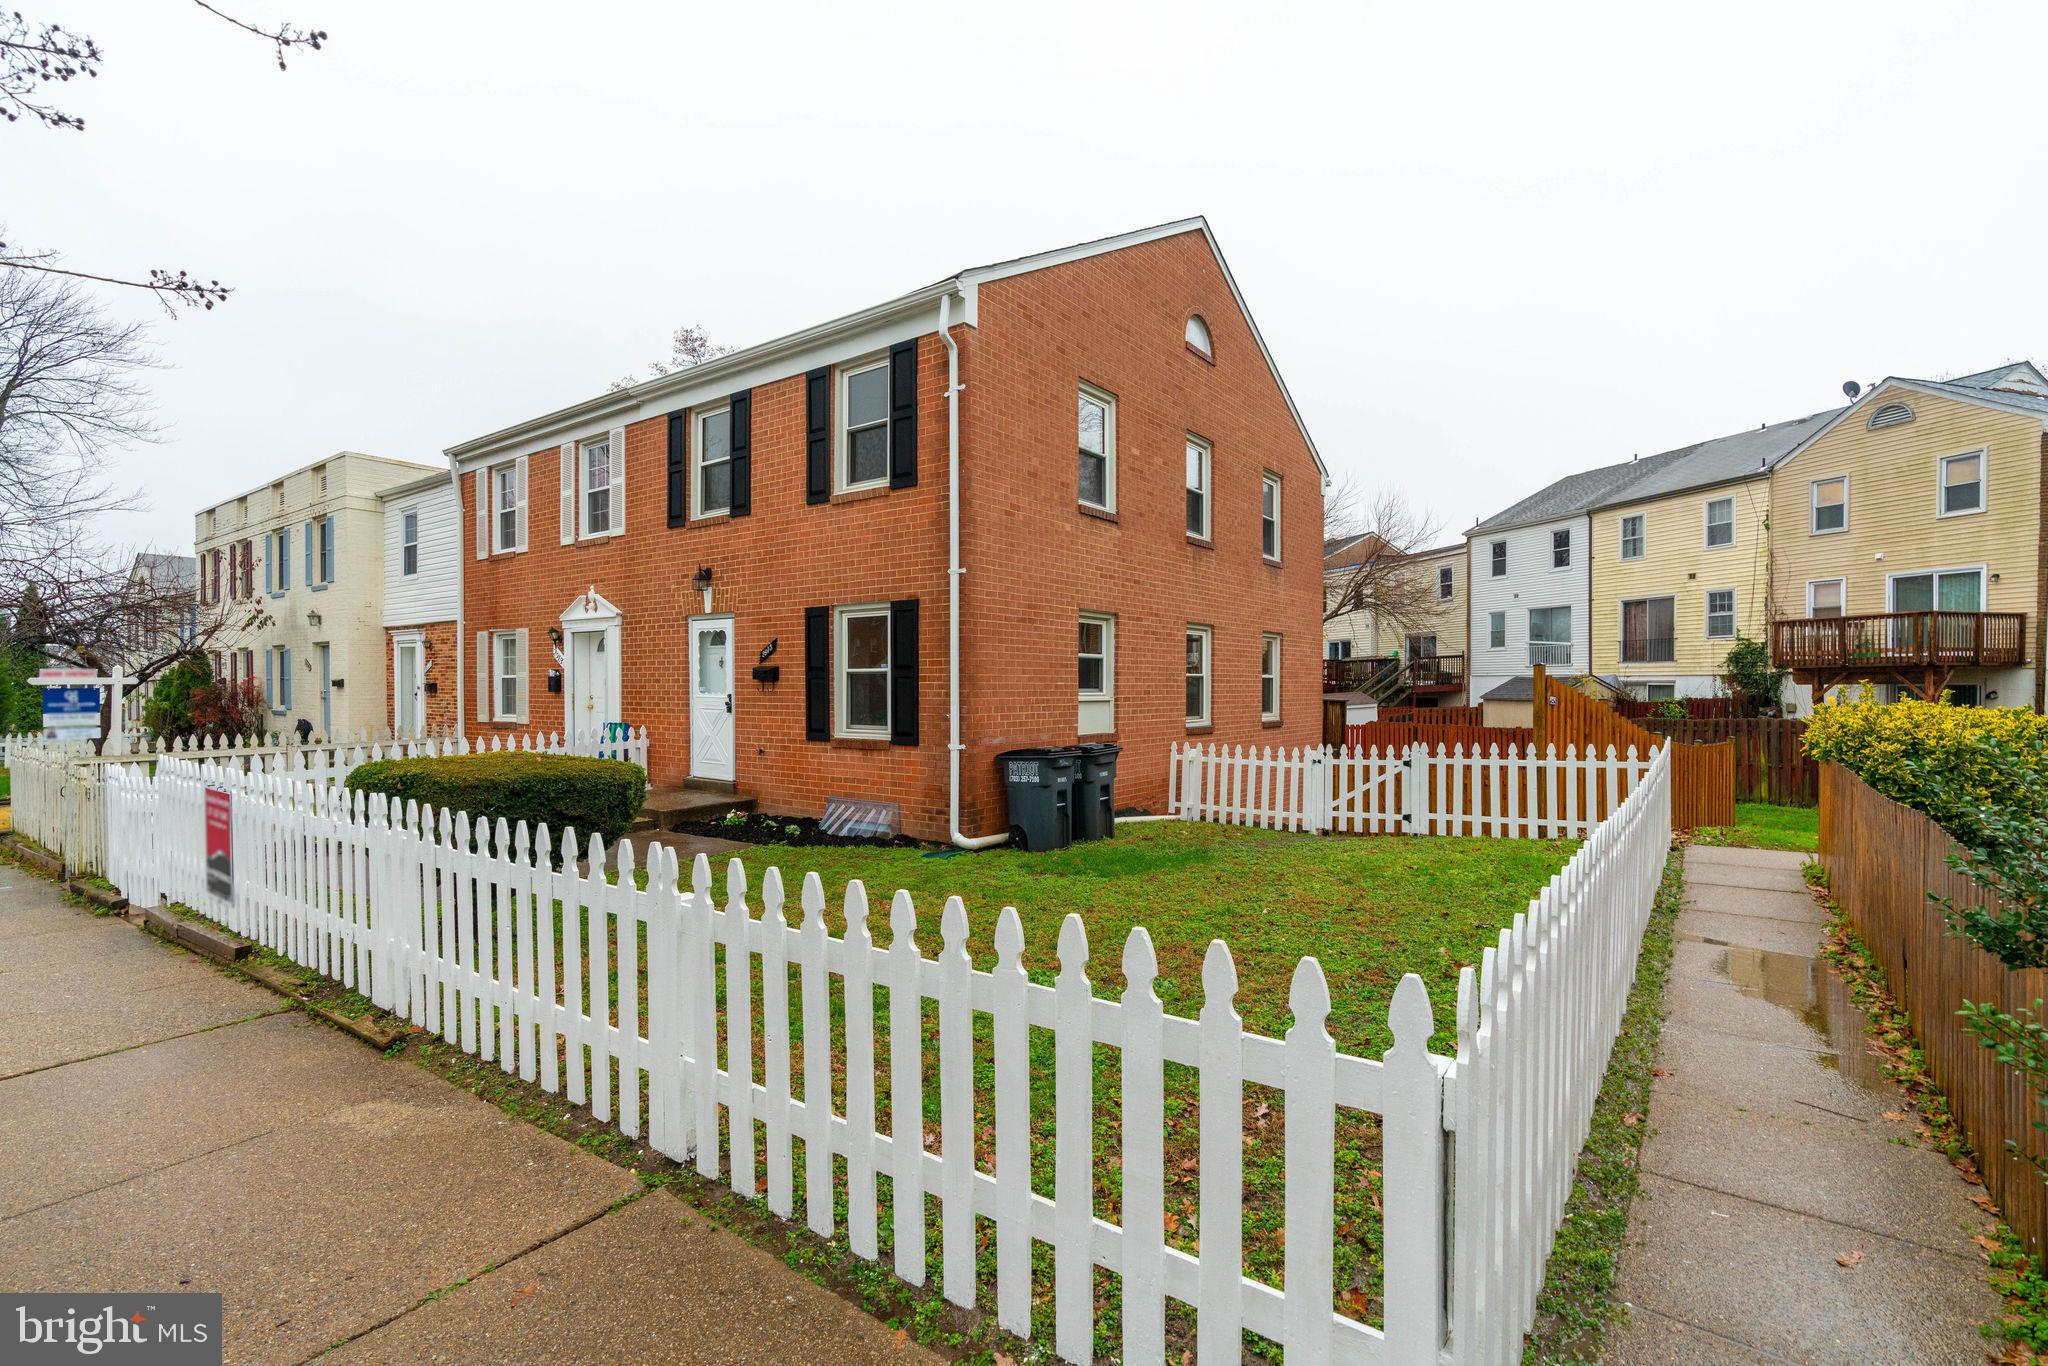 Conveniently located end unit townhome with a completely fenced yard (picket in the front and board